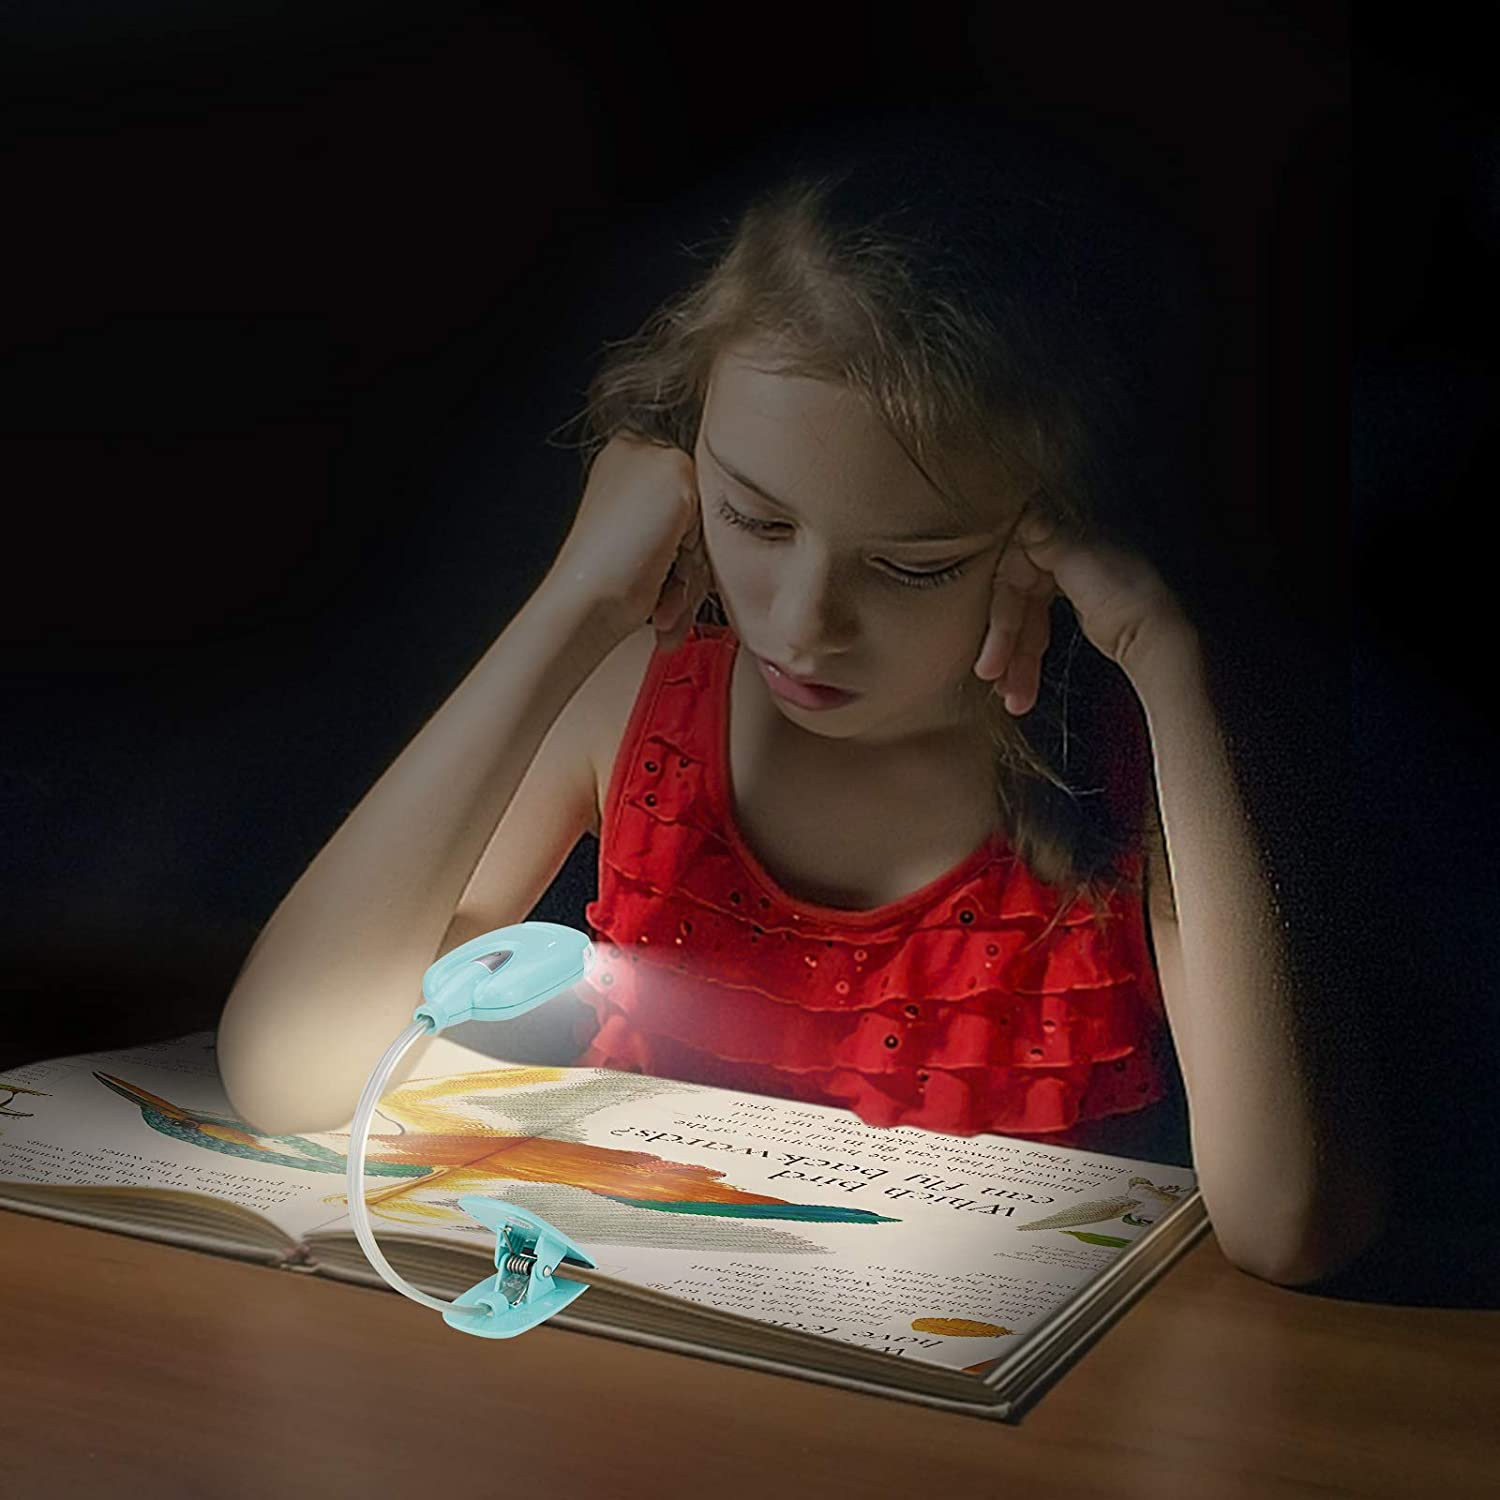 LUXSWAY Book Light for Reading at Night in Bed Kids Book Light Bookmark Bed Clip Book Light for Kids Book Lamp Portable LED Reading Light with Flexible Battery Operated Reading Lamp for Travel